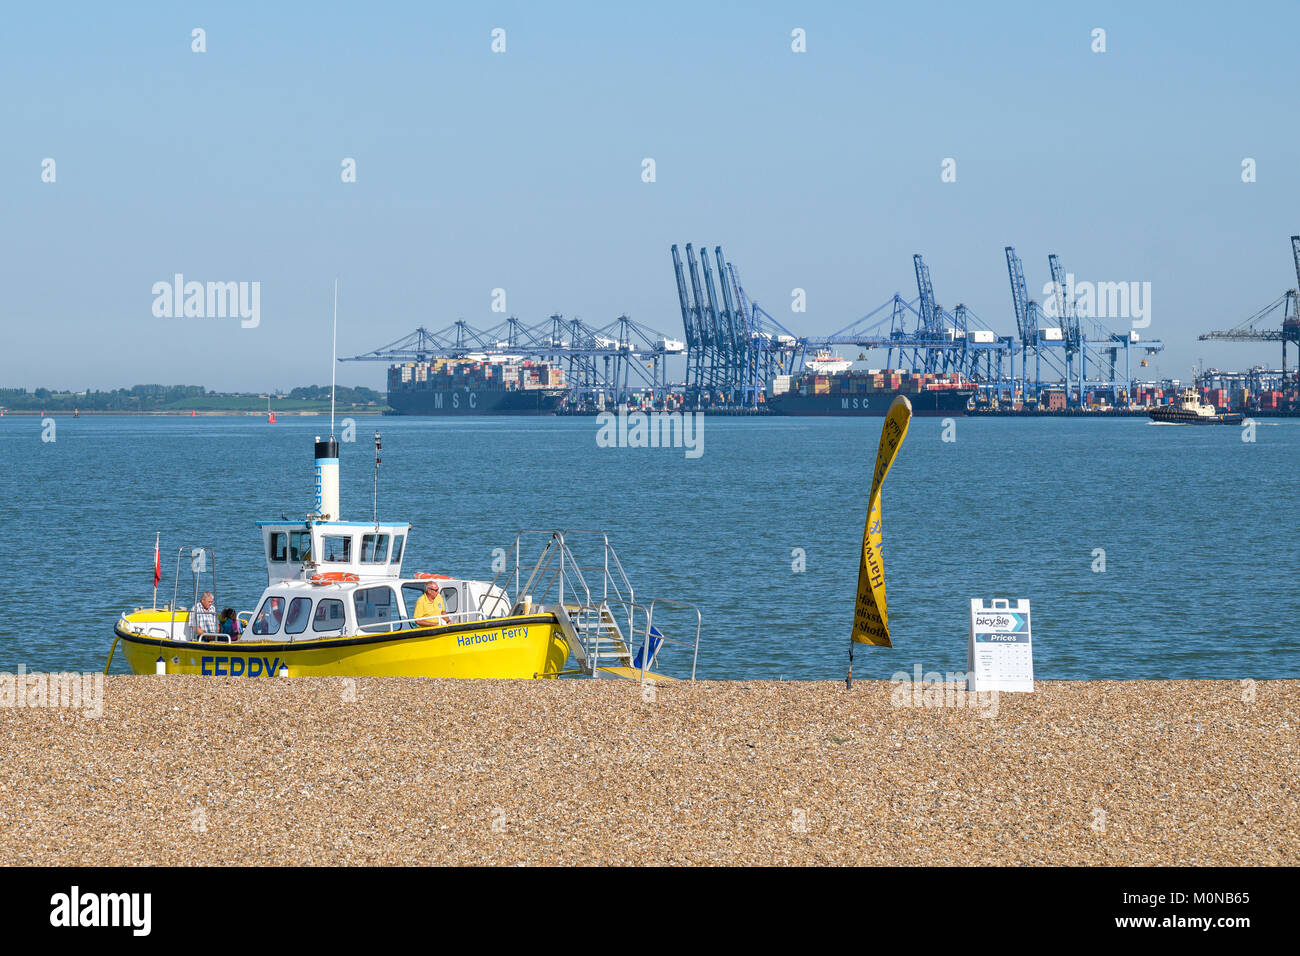 Harwich harbour foot/bicycle ferry ready to depart from Landguard point, Felixstowe, Suffolk, England, UK - Stock Image